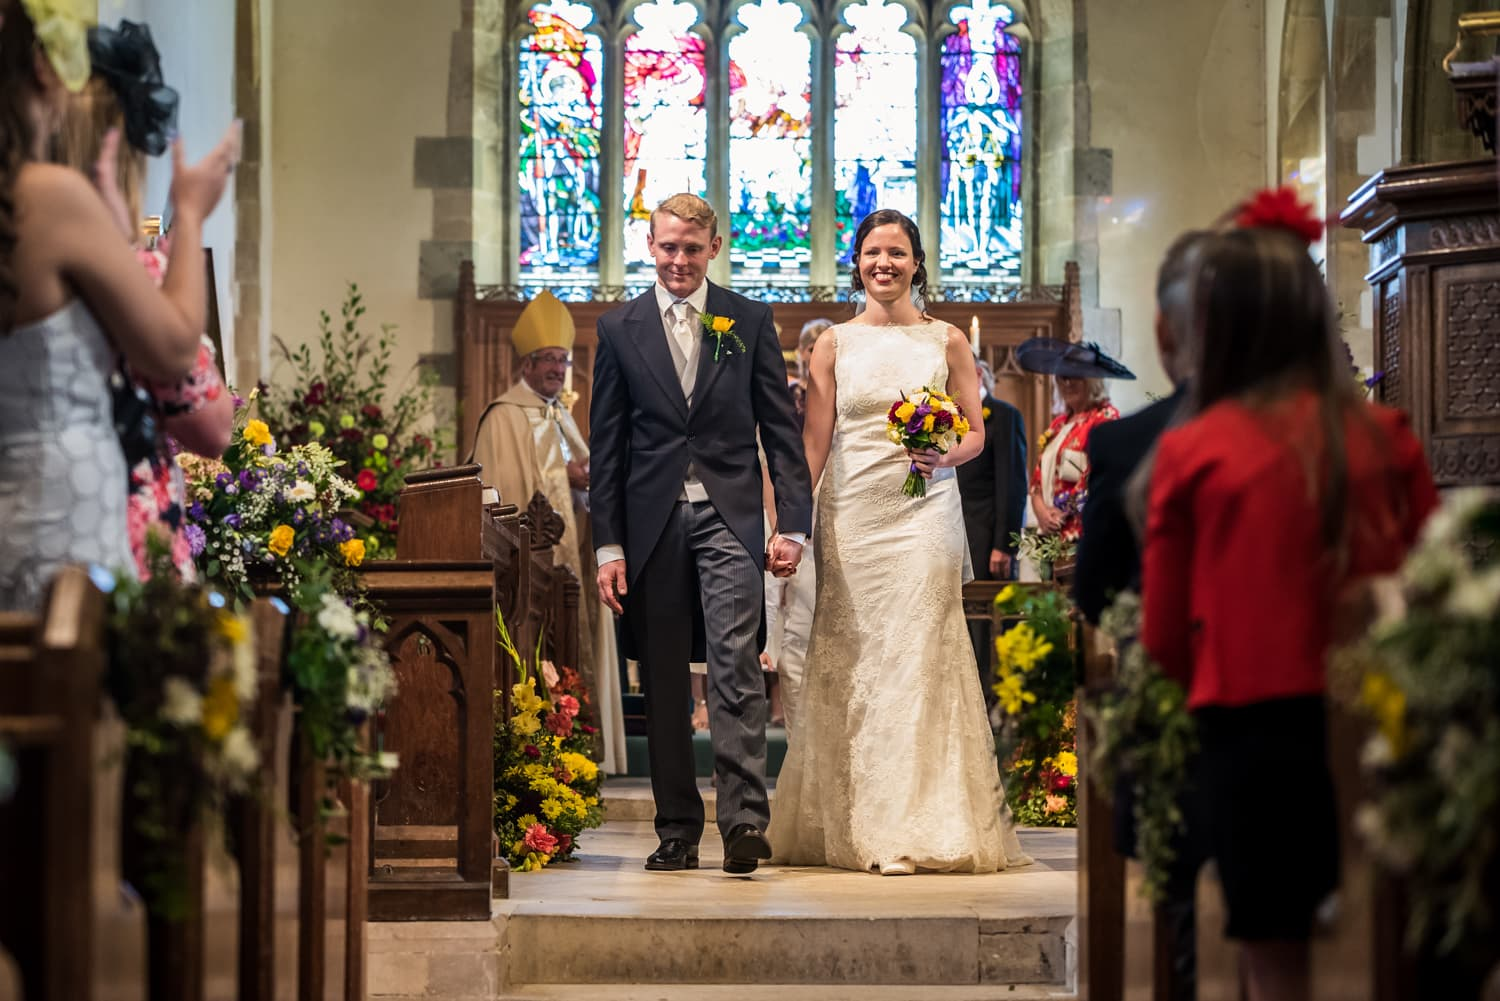 056-bride-and-groom-walk-aisle.jpg